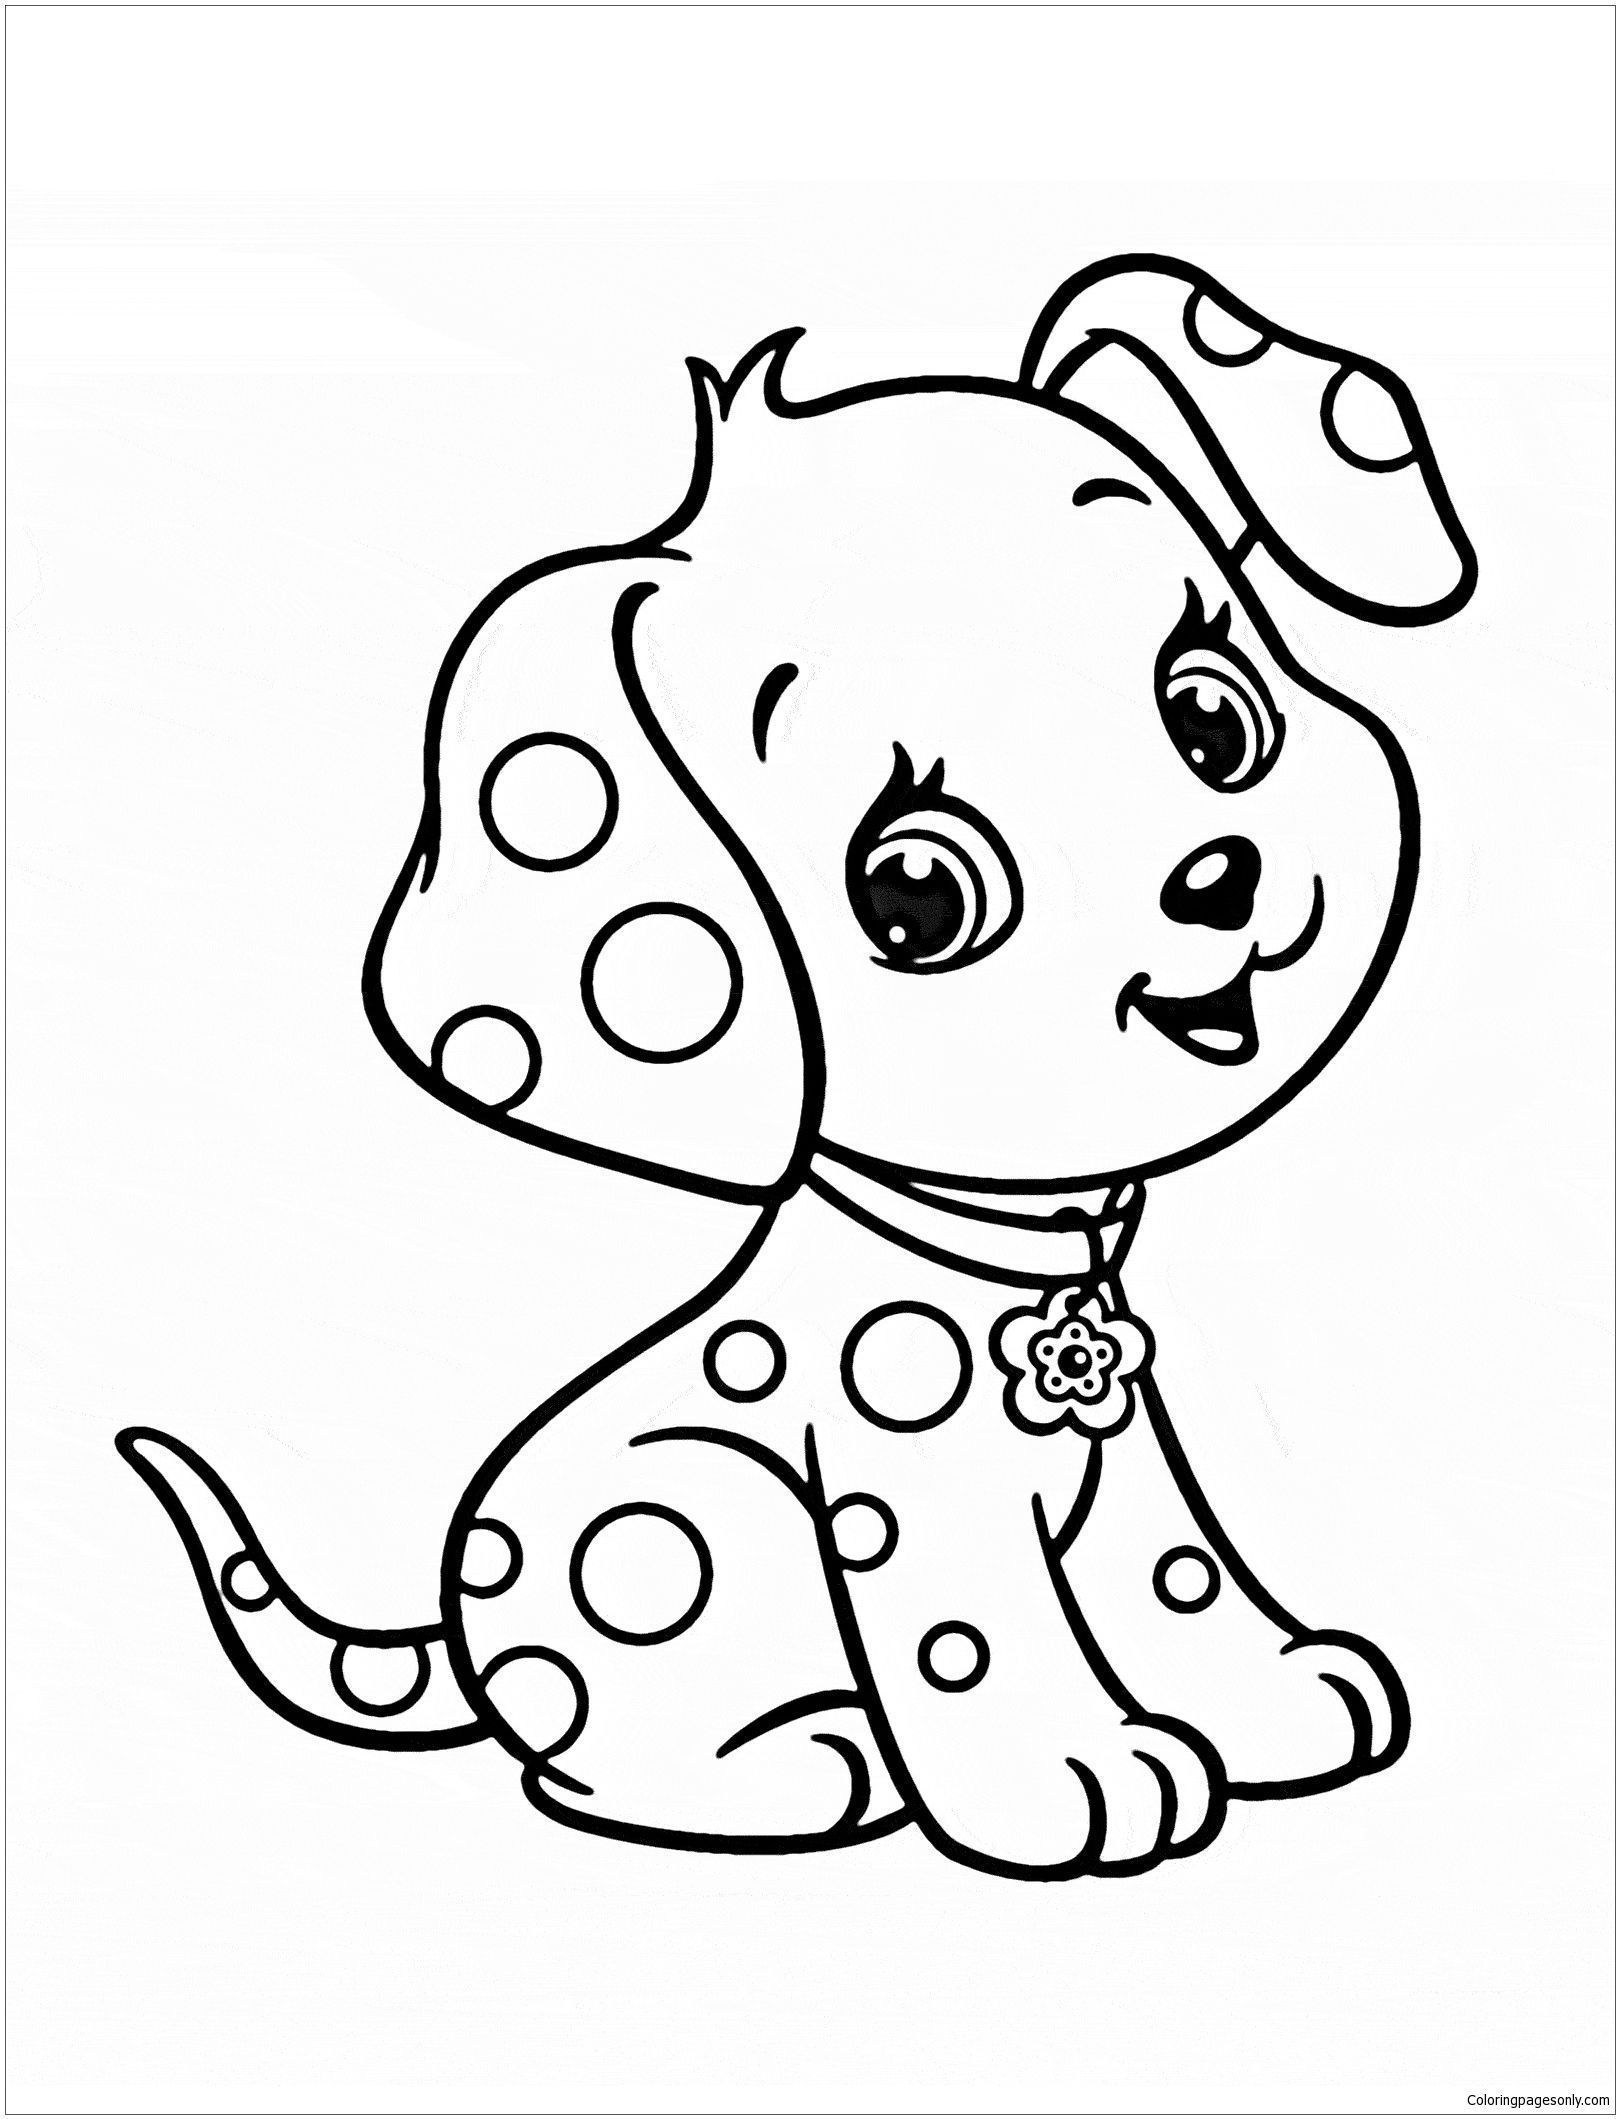 Cute Puppy 5 Coloring Page Puppy Coloring Pages Puppy